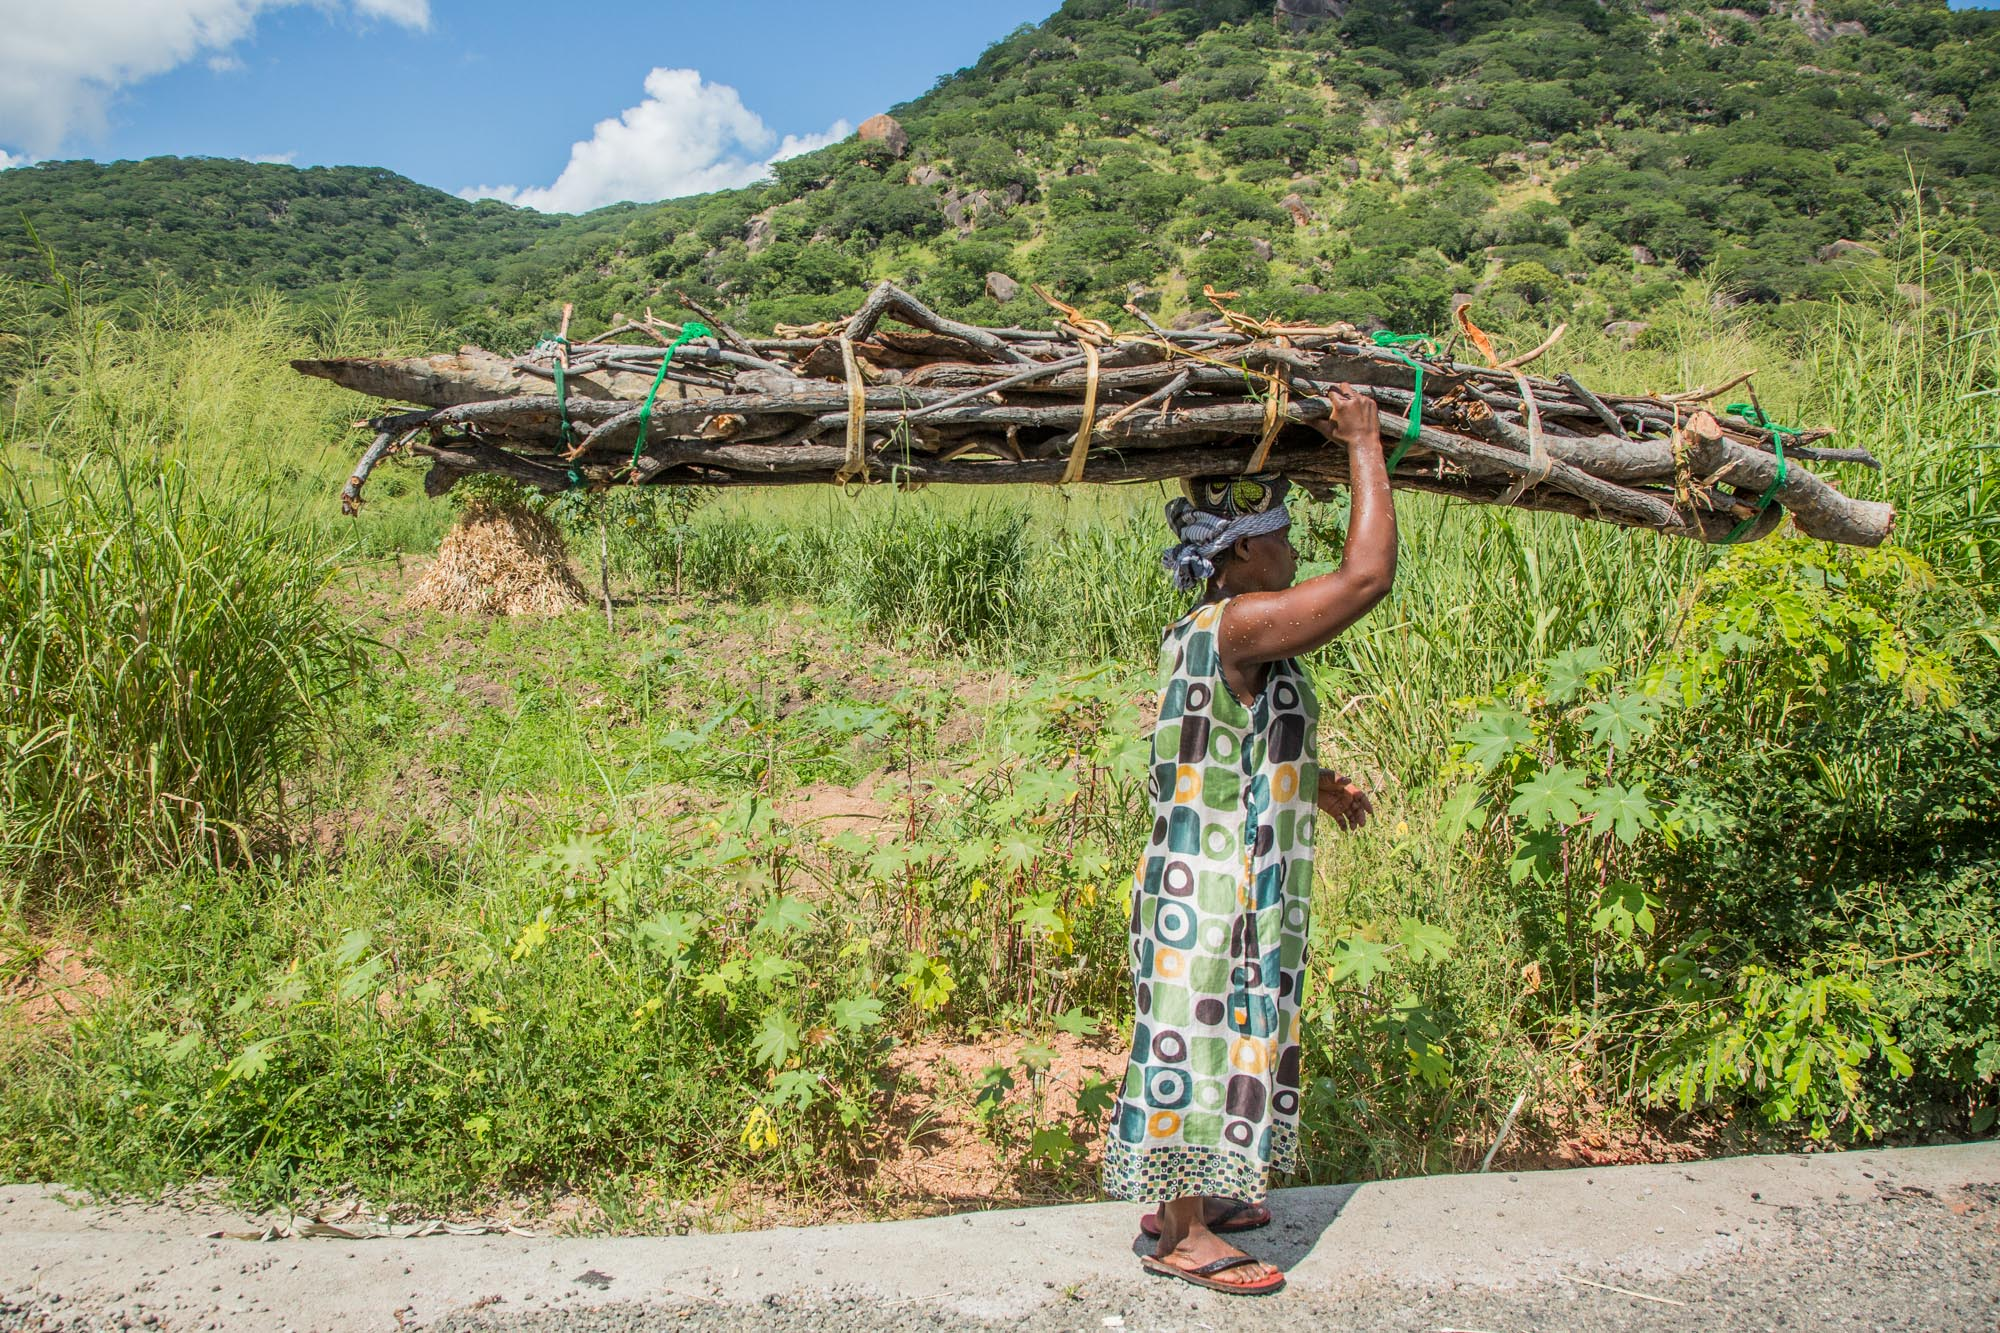 Women in Malawi spend up to 6 hours a day collecting firewood for cooking and heating.